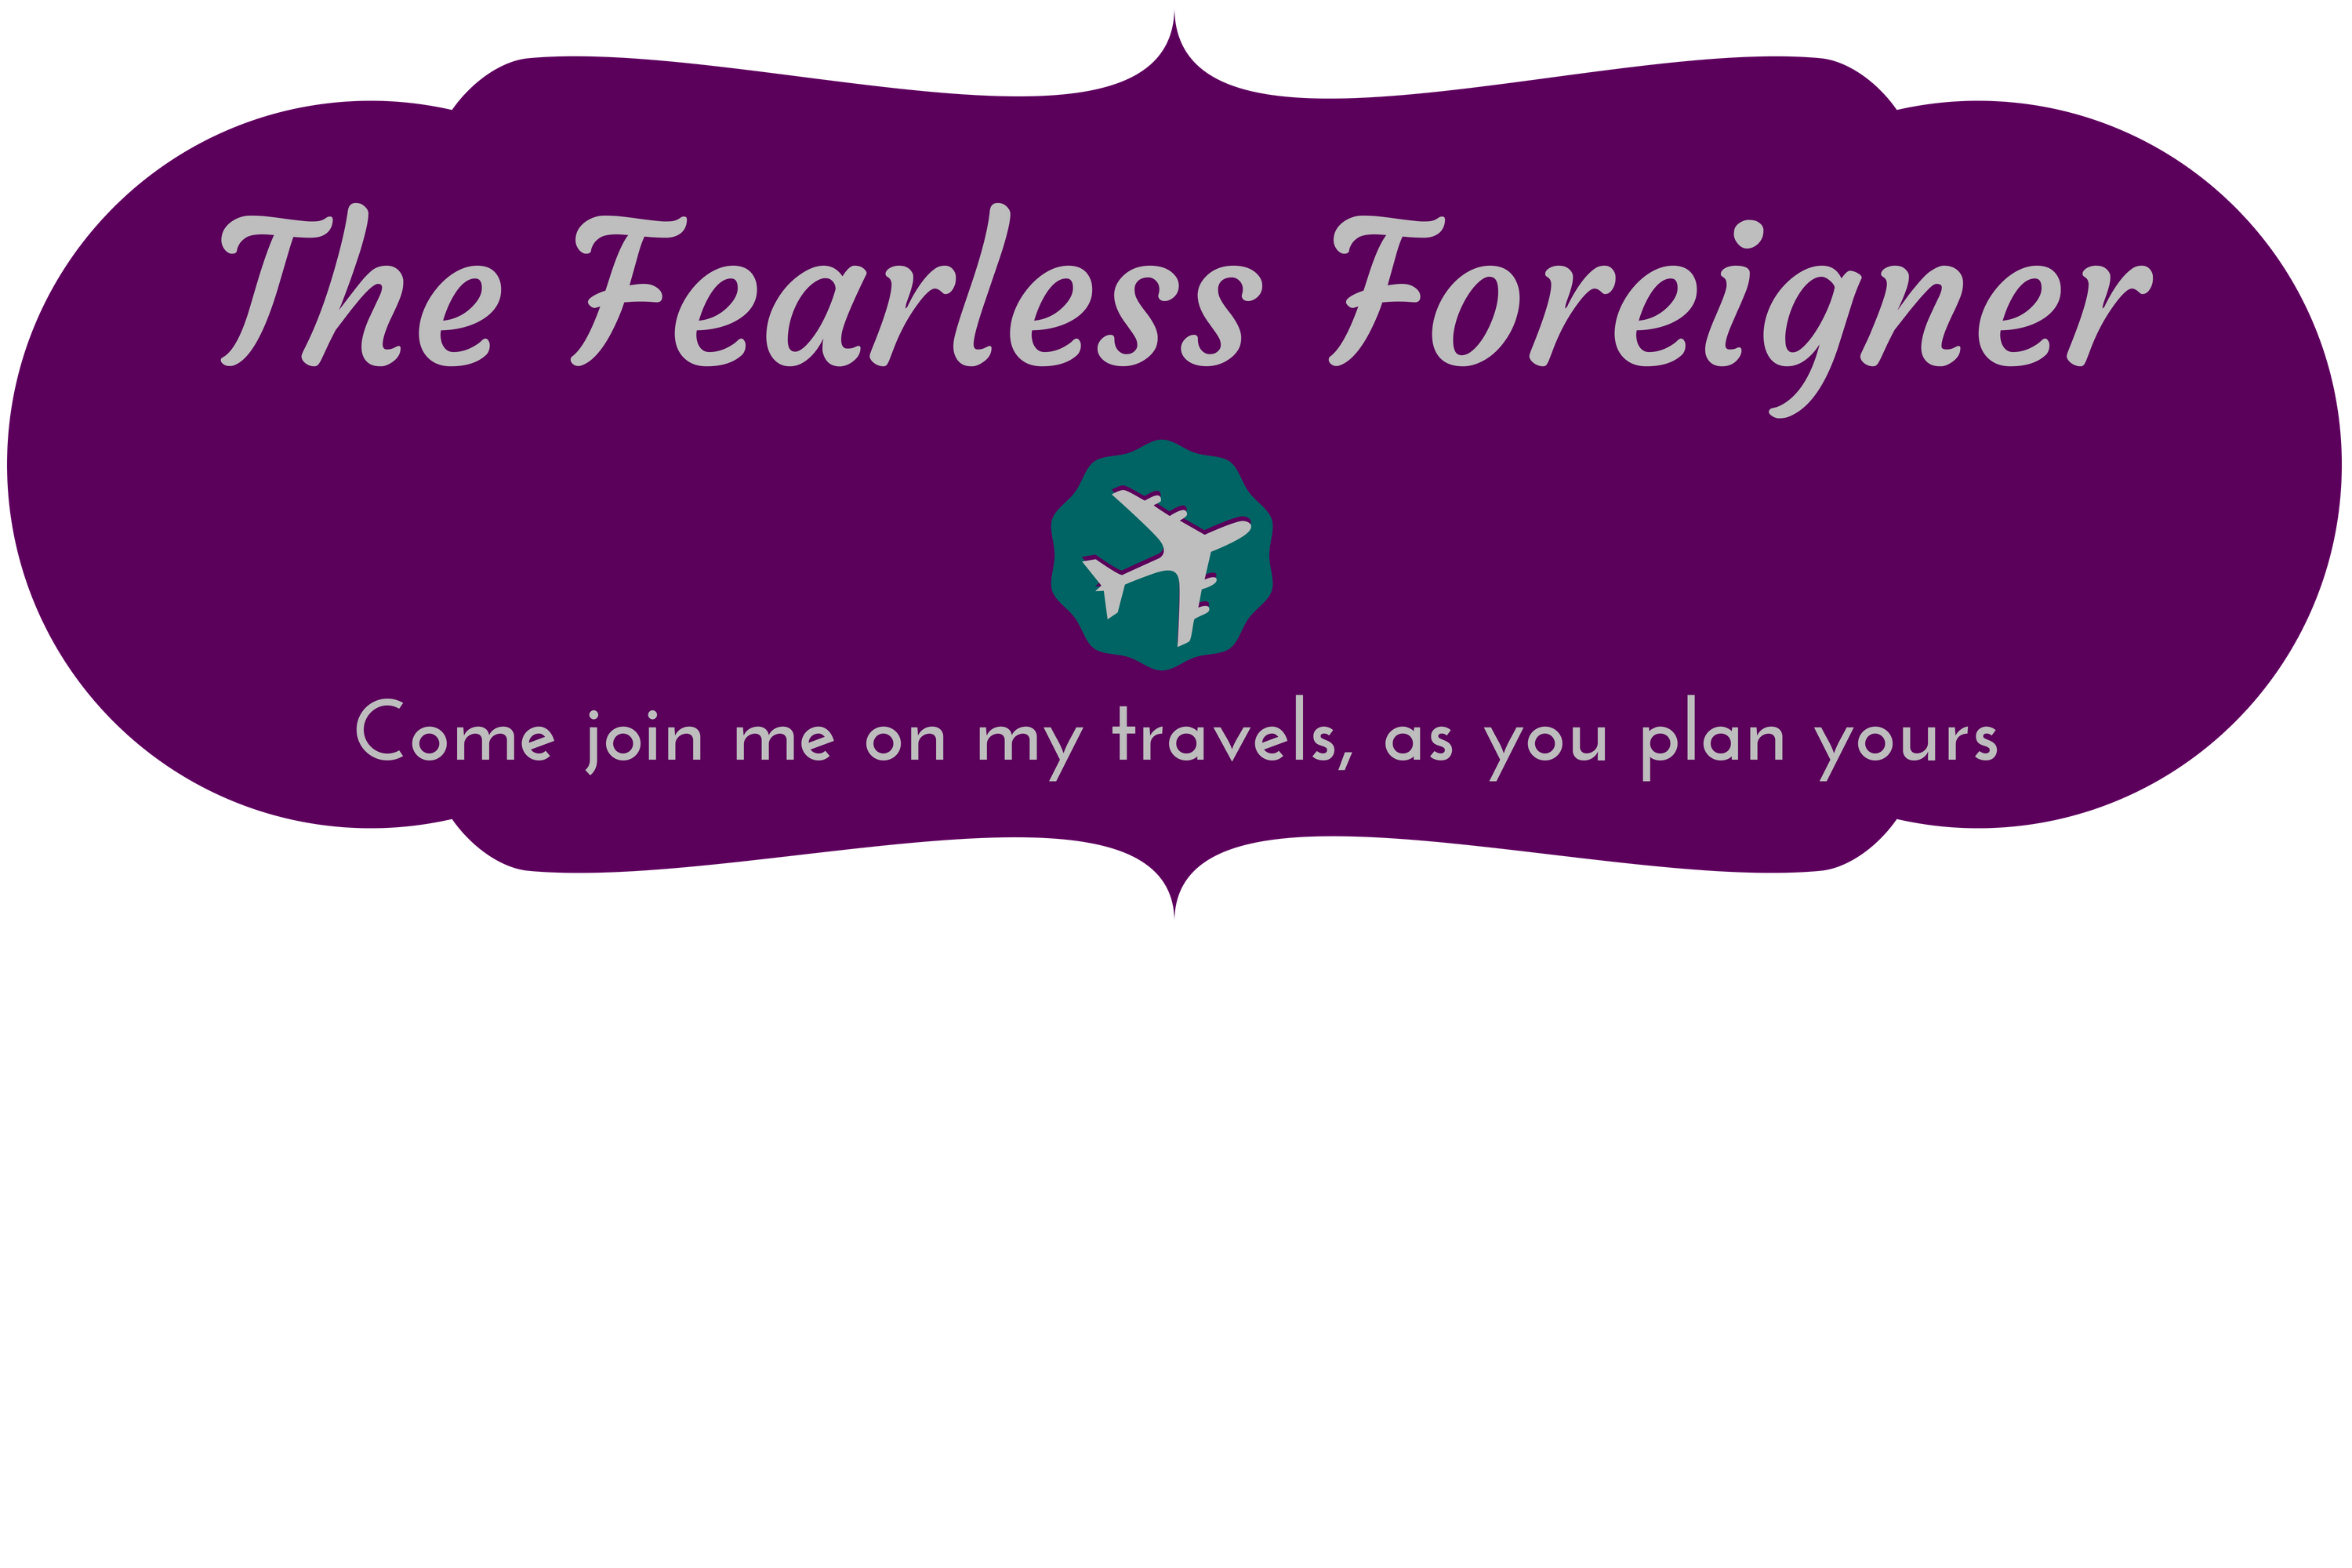 The Fearless Foreigner